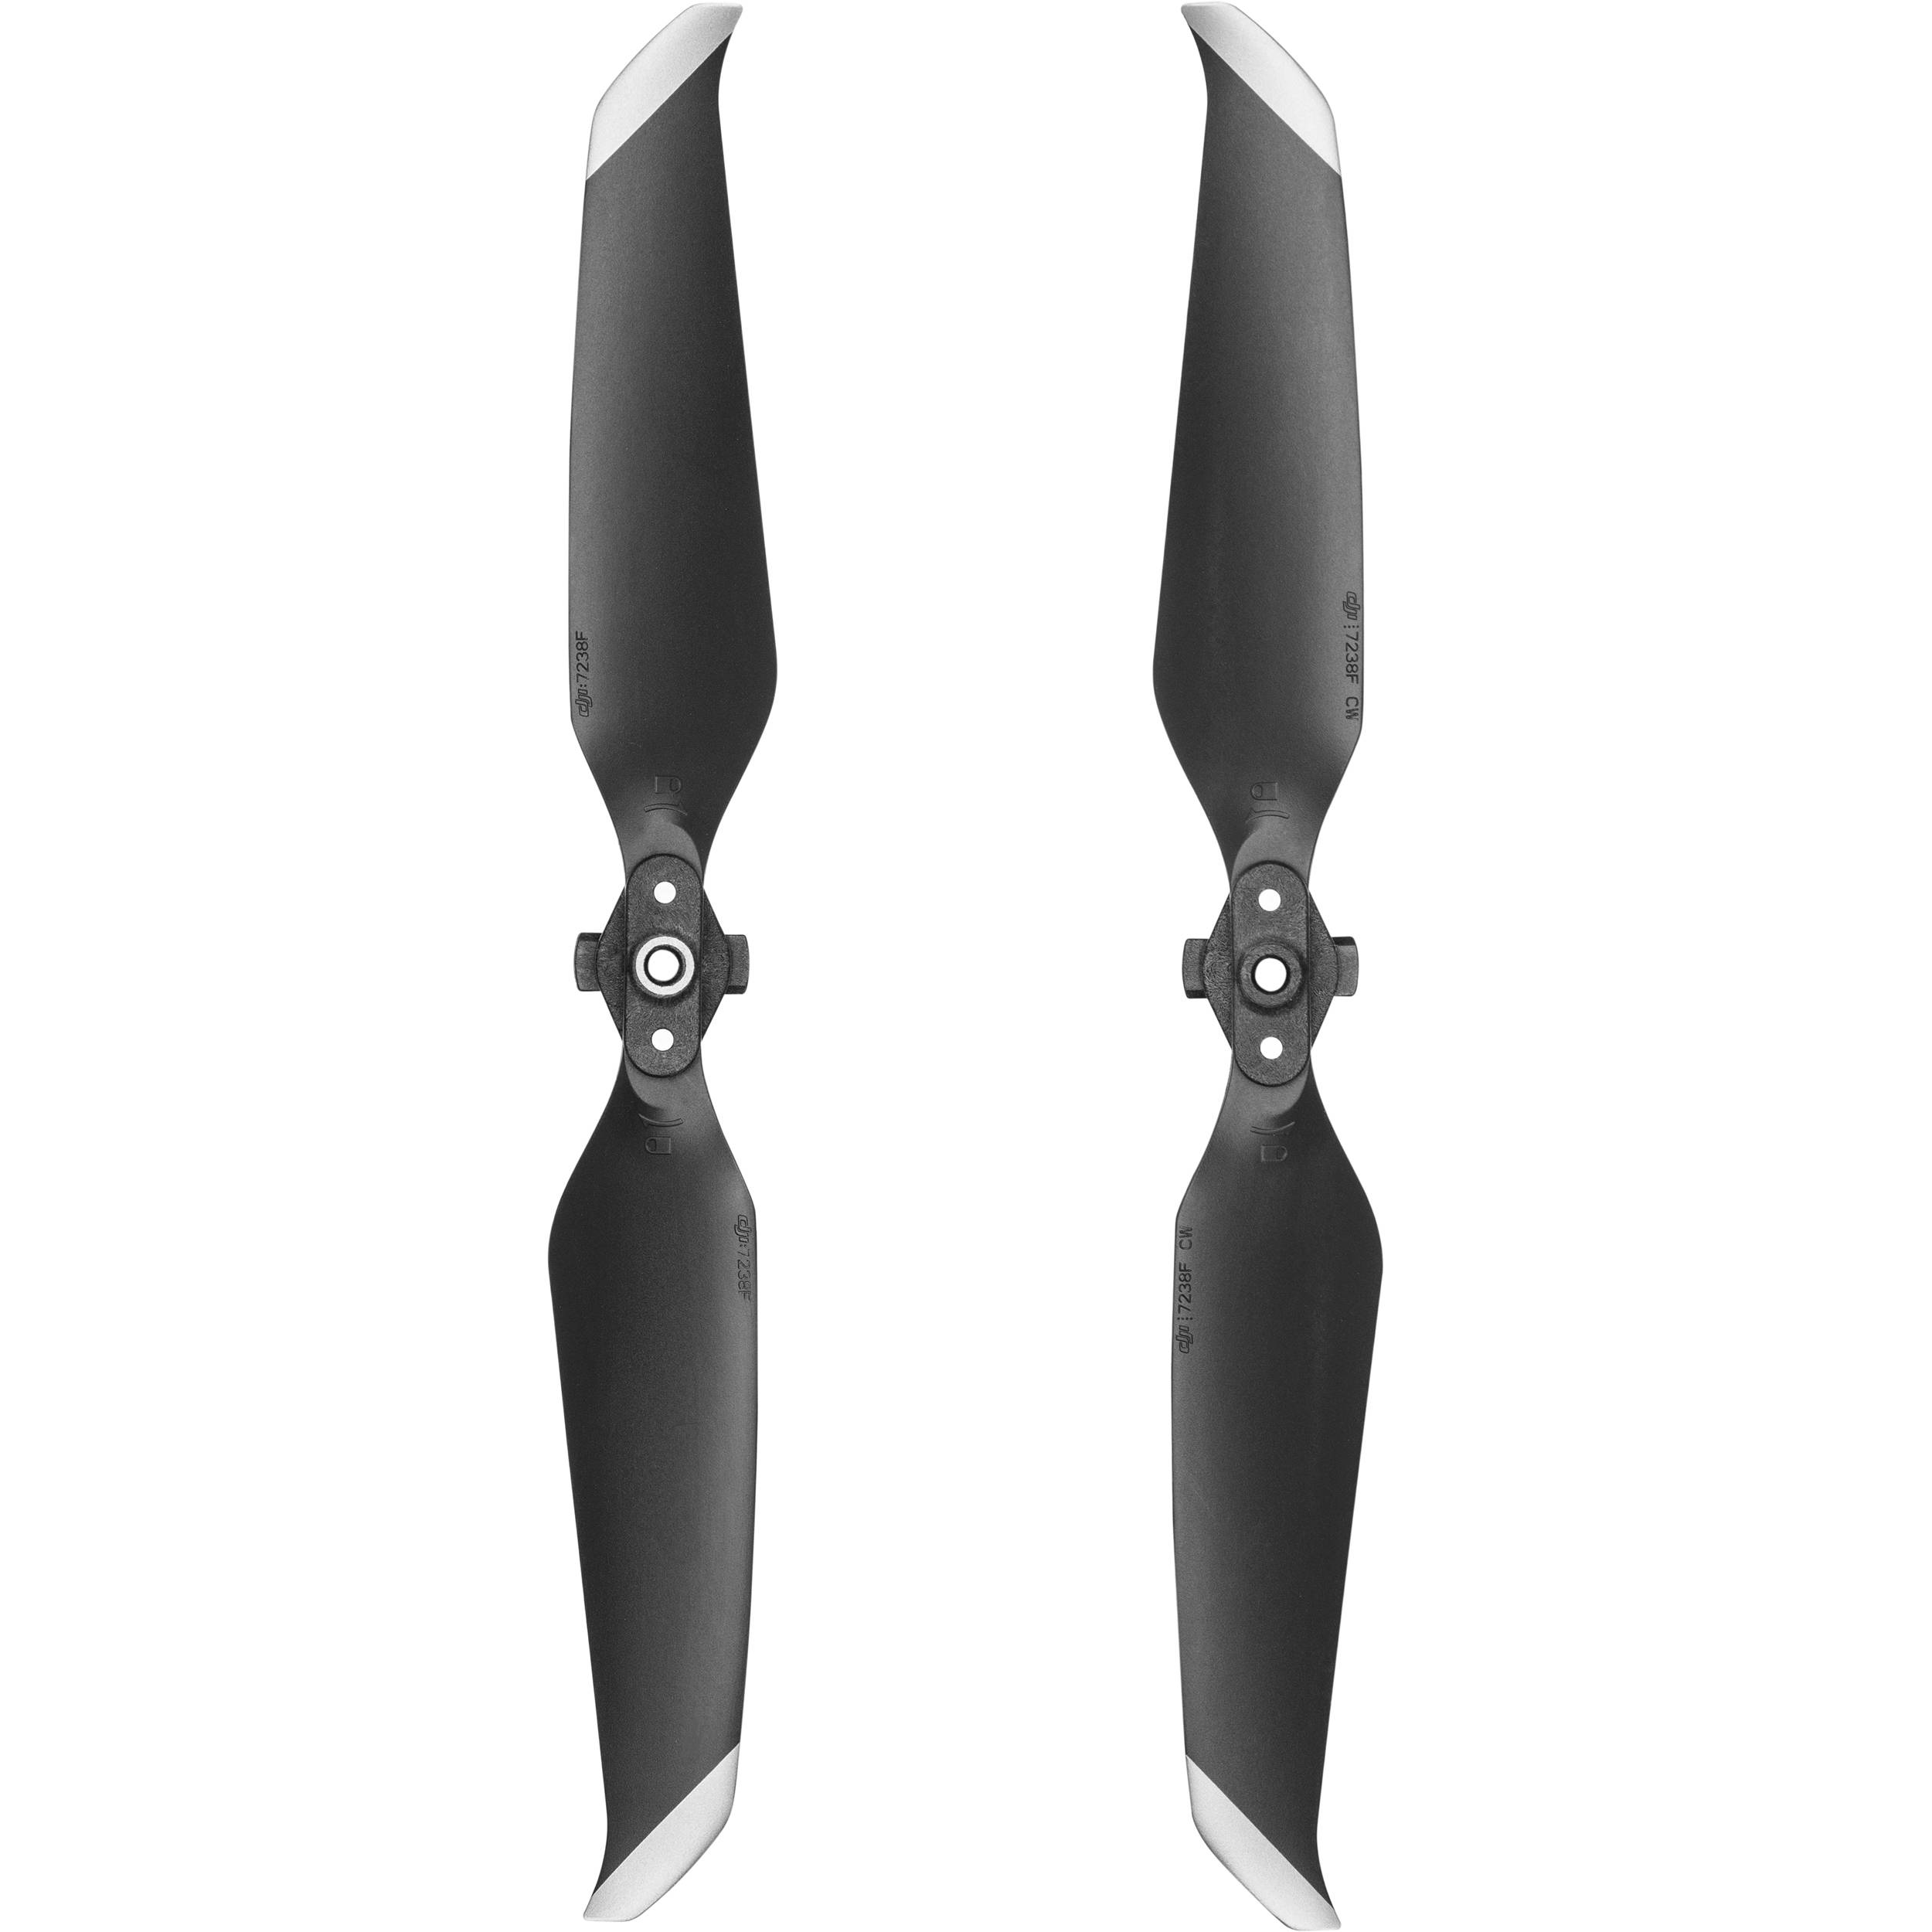 TOMAT Mavic Air 2 Propellers,Low-Noise 7238F Props for DJI Mavic Air 2 Accessories 4 Pairs